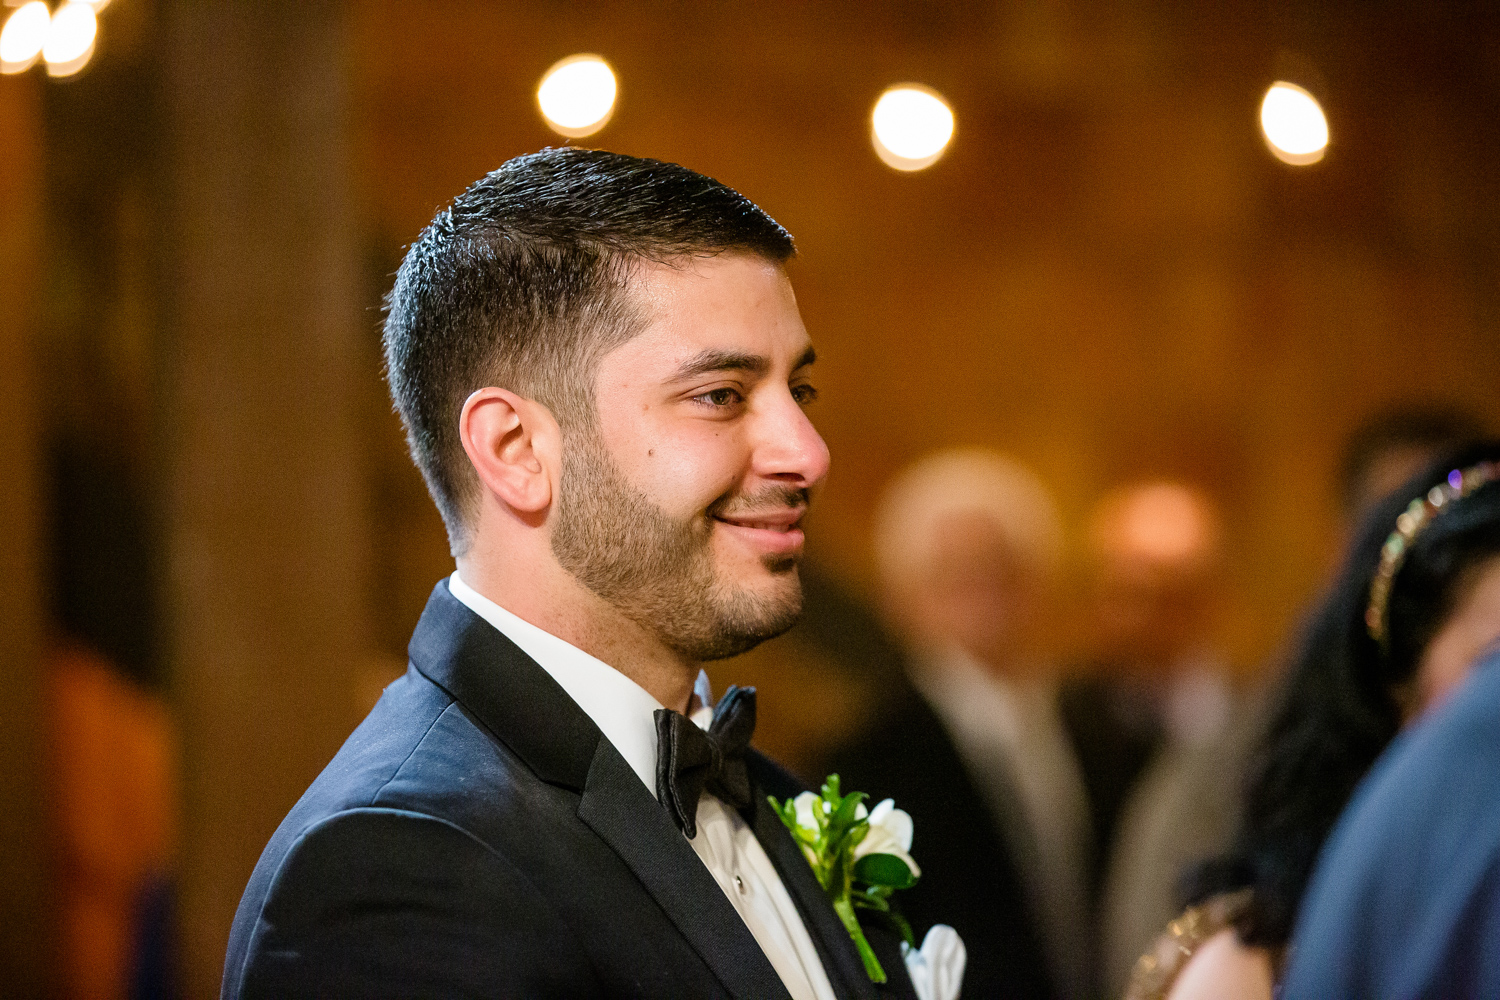 Grooms sees bride for first time at wedding ceremony